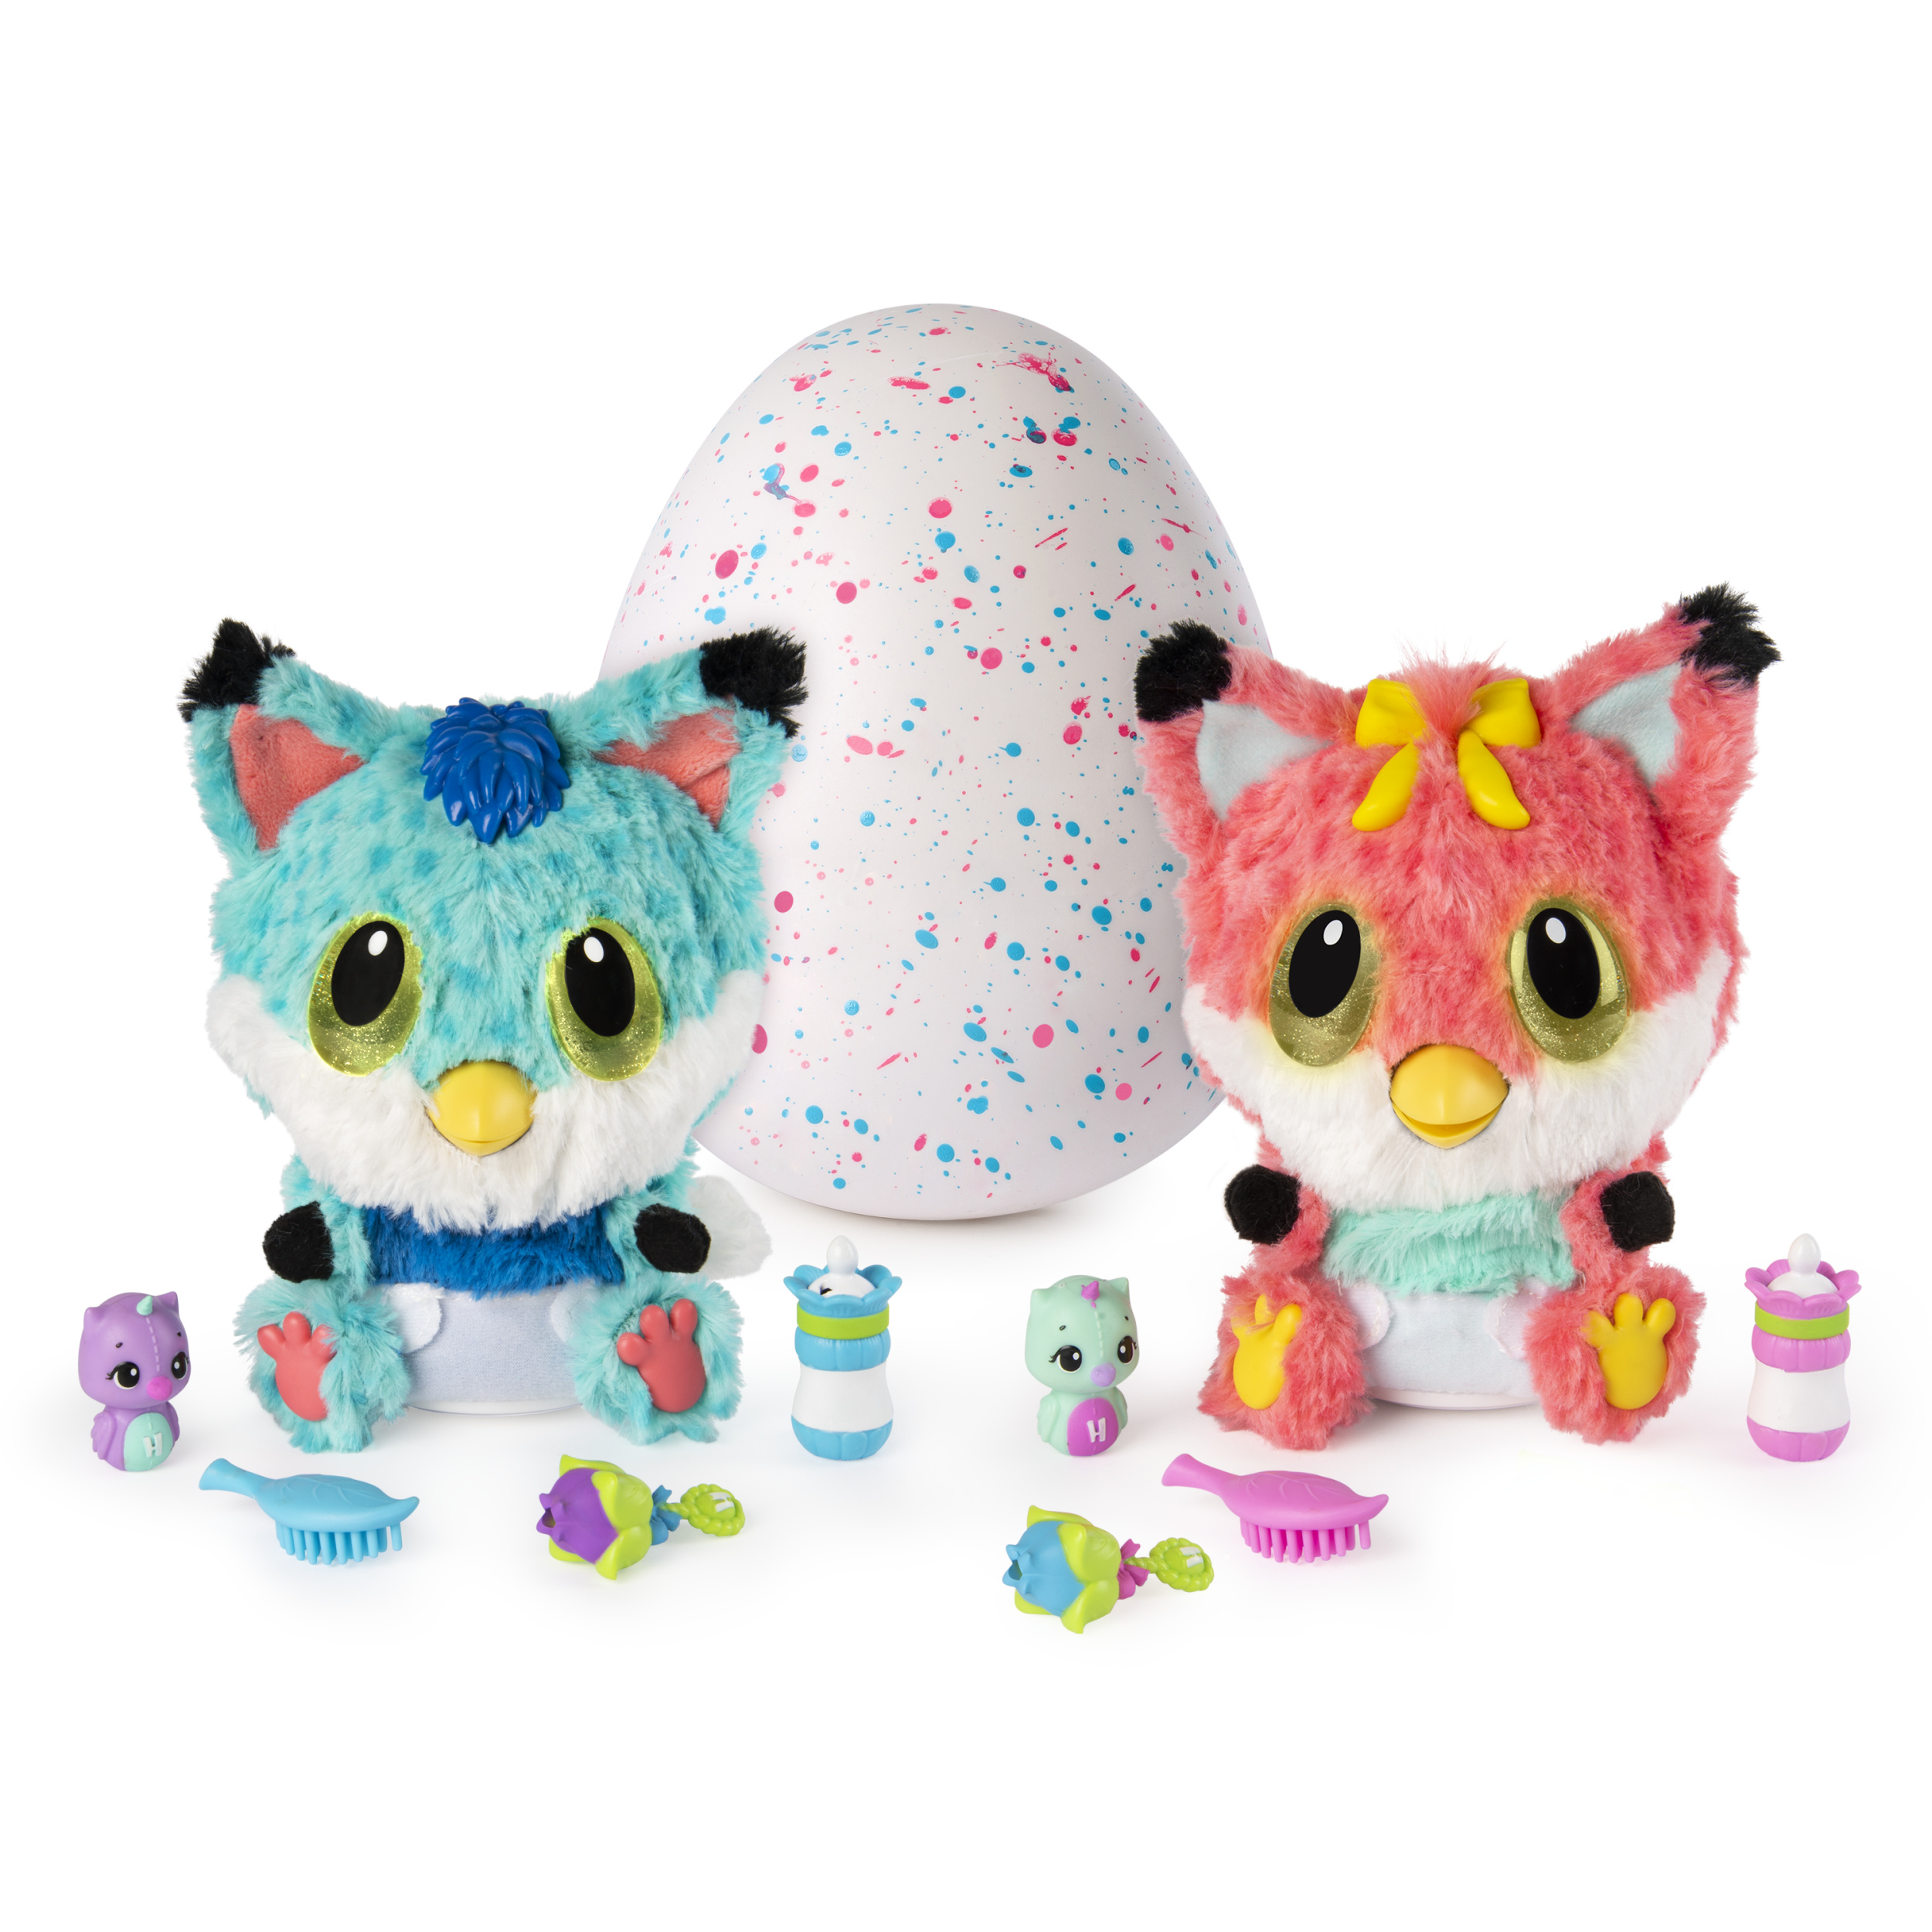 Hatchimals, HatchiBabies Foxfin, Hatching Egg with Interactive Toy Pet Baby (Styles May Vary), Walmart Exclusive, for Ages 5 and Up